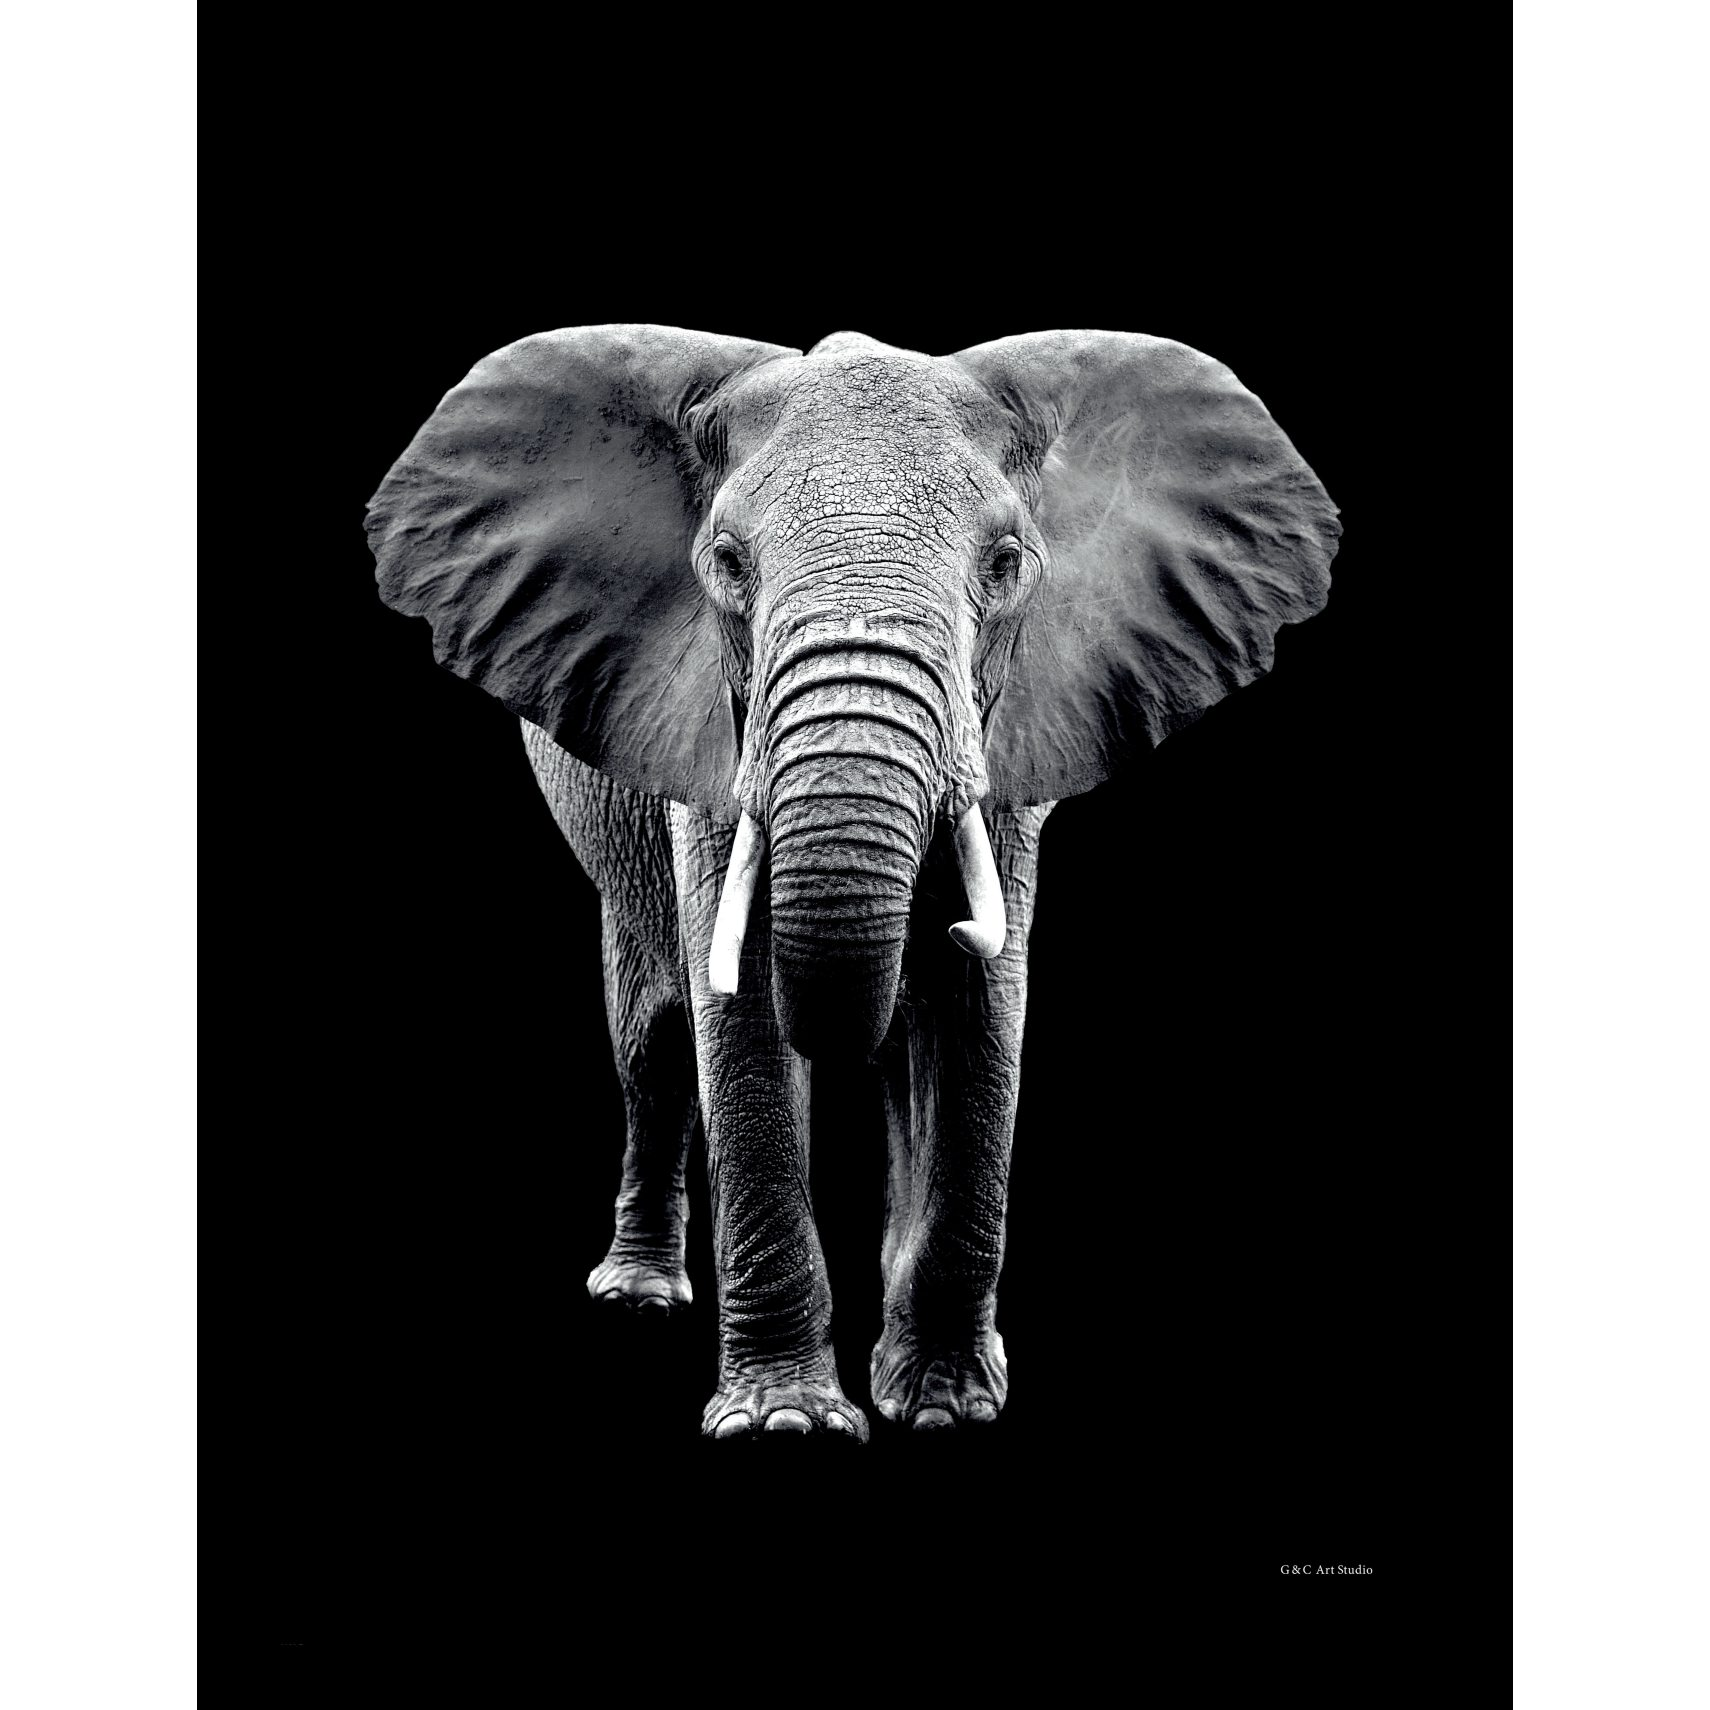 ART GALLERY Plakat 30 x 40 x 1,5 cm - Elephant portrait og ramme i 15 mm sort fyrretræ